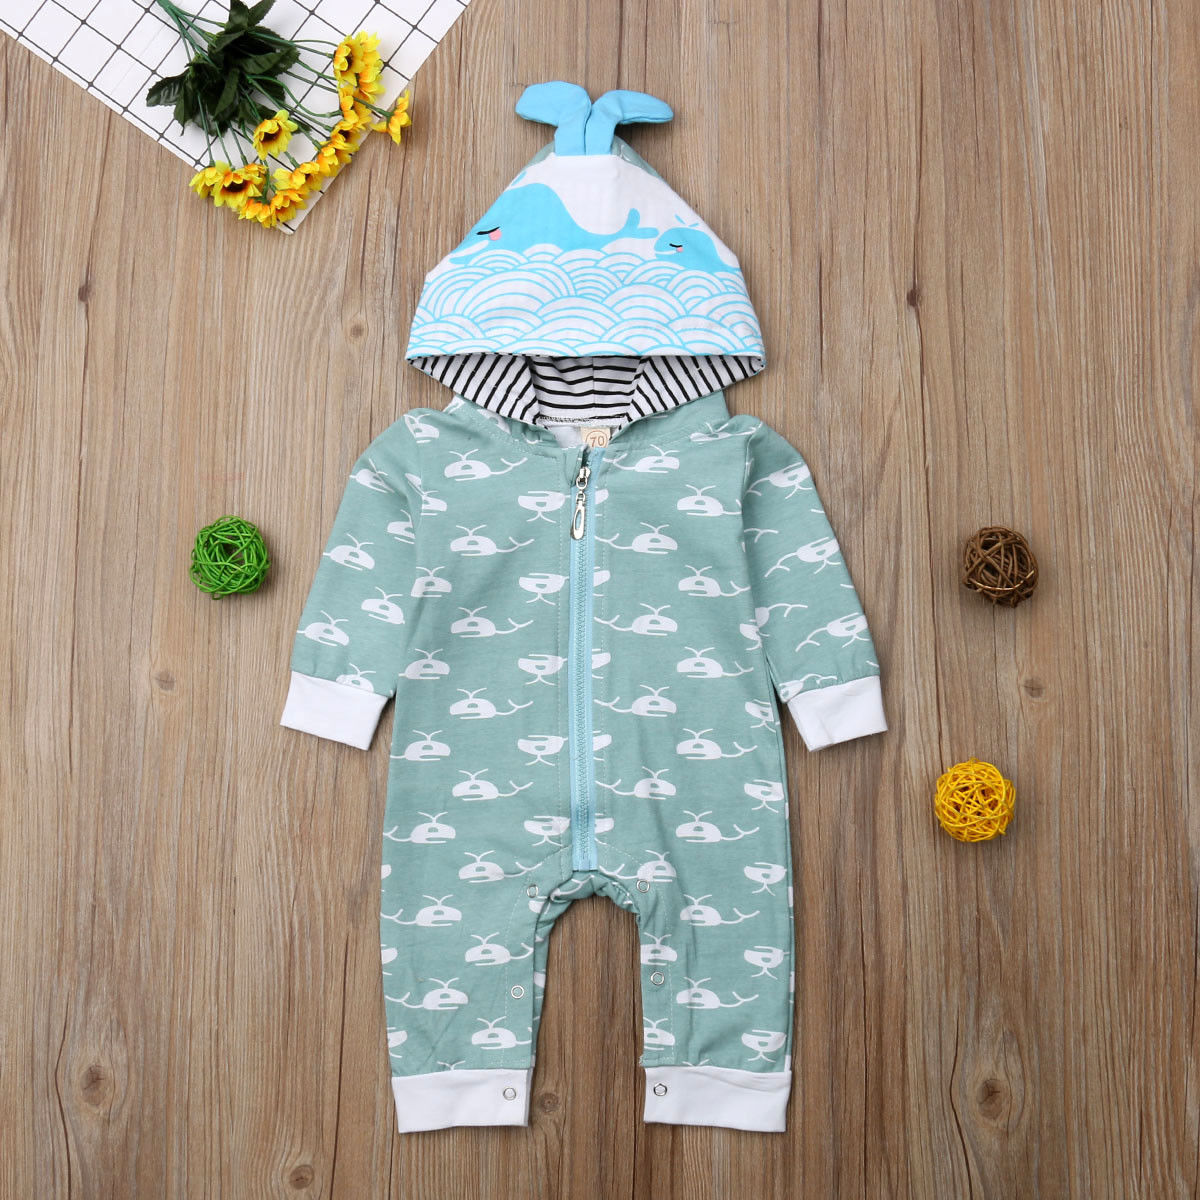 Newborn Baby Boy Girl Autumn Cartoon Hooded   Romper   Jumpsuit Outfit Clothes 0-18M